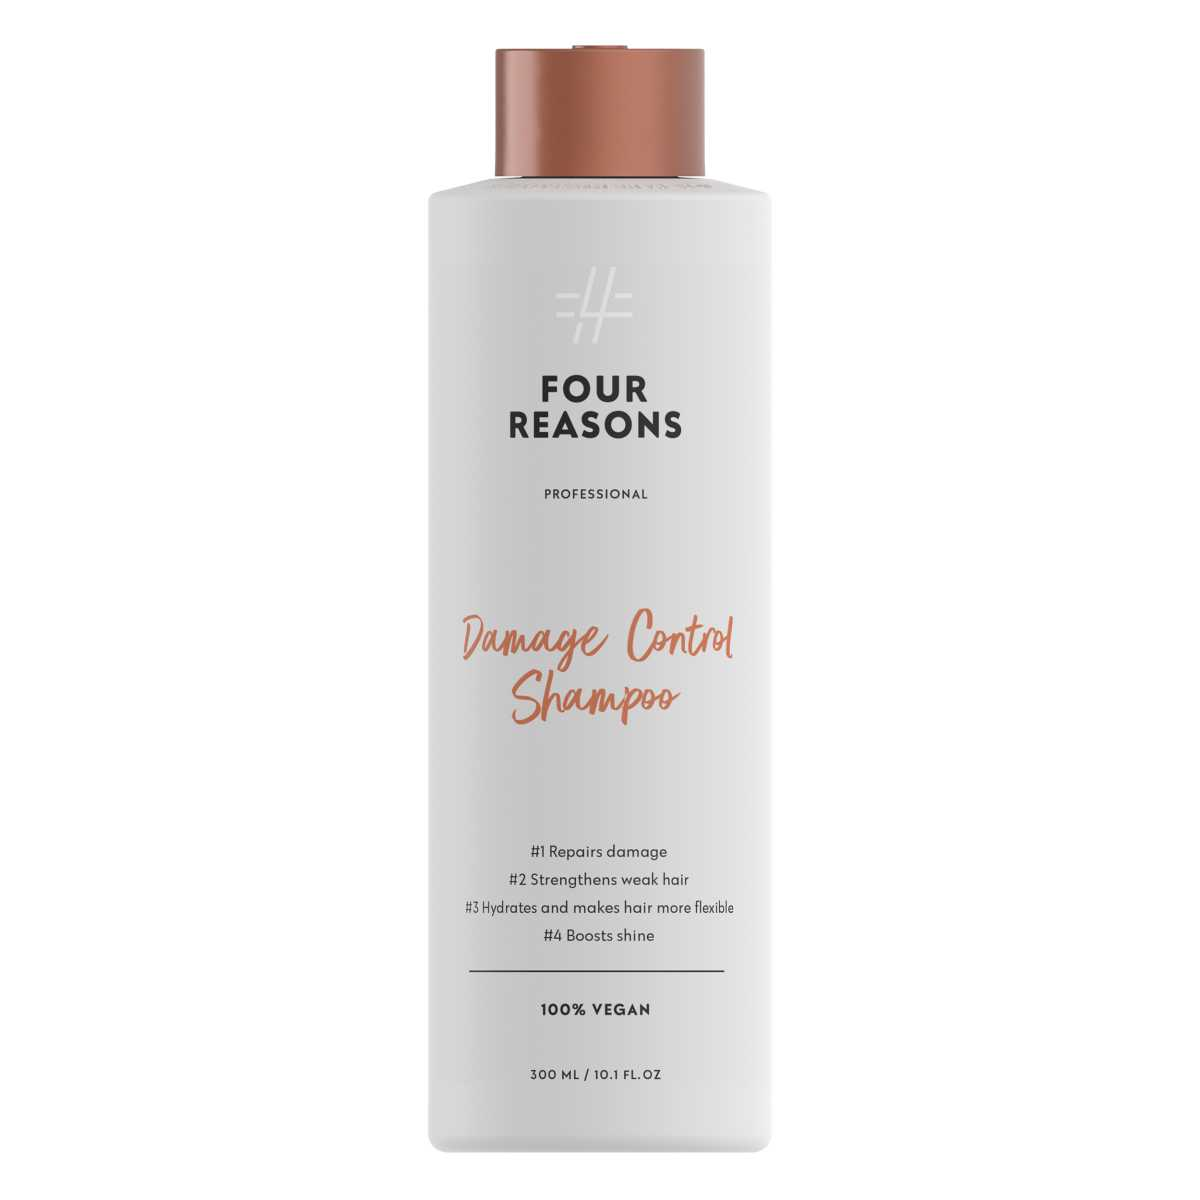 Four-Reasons-Professional-Damage-Control-Shampoo